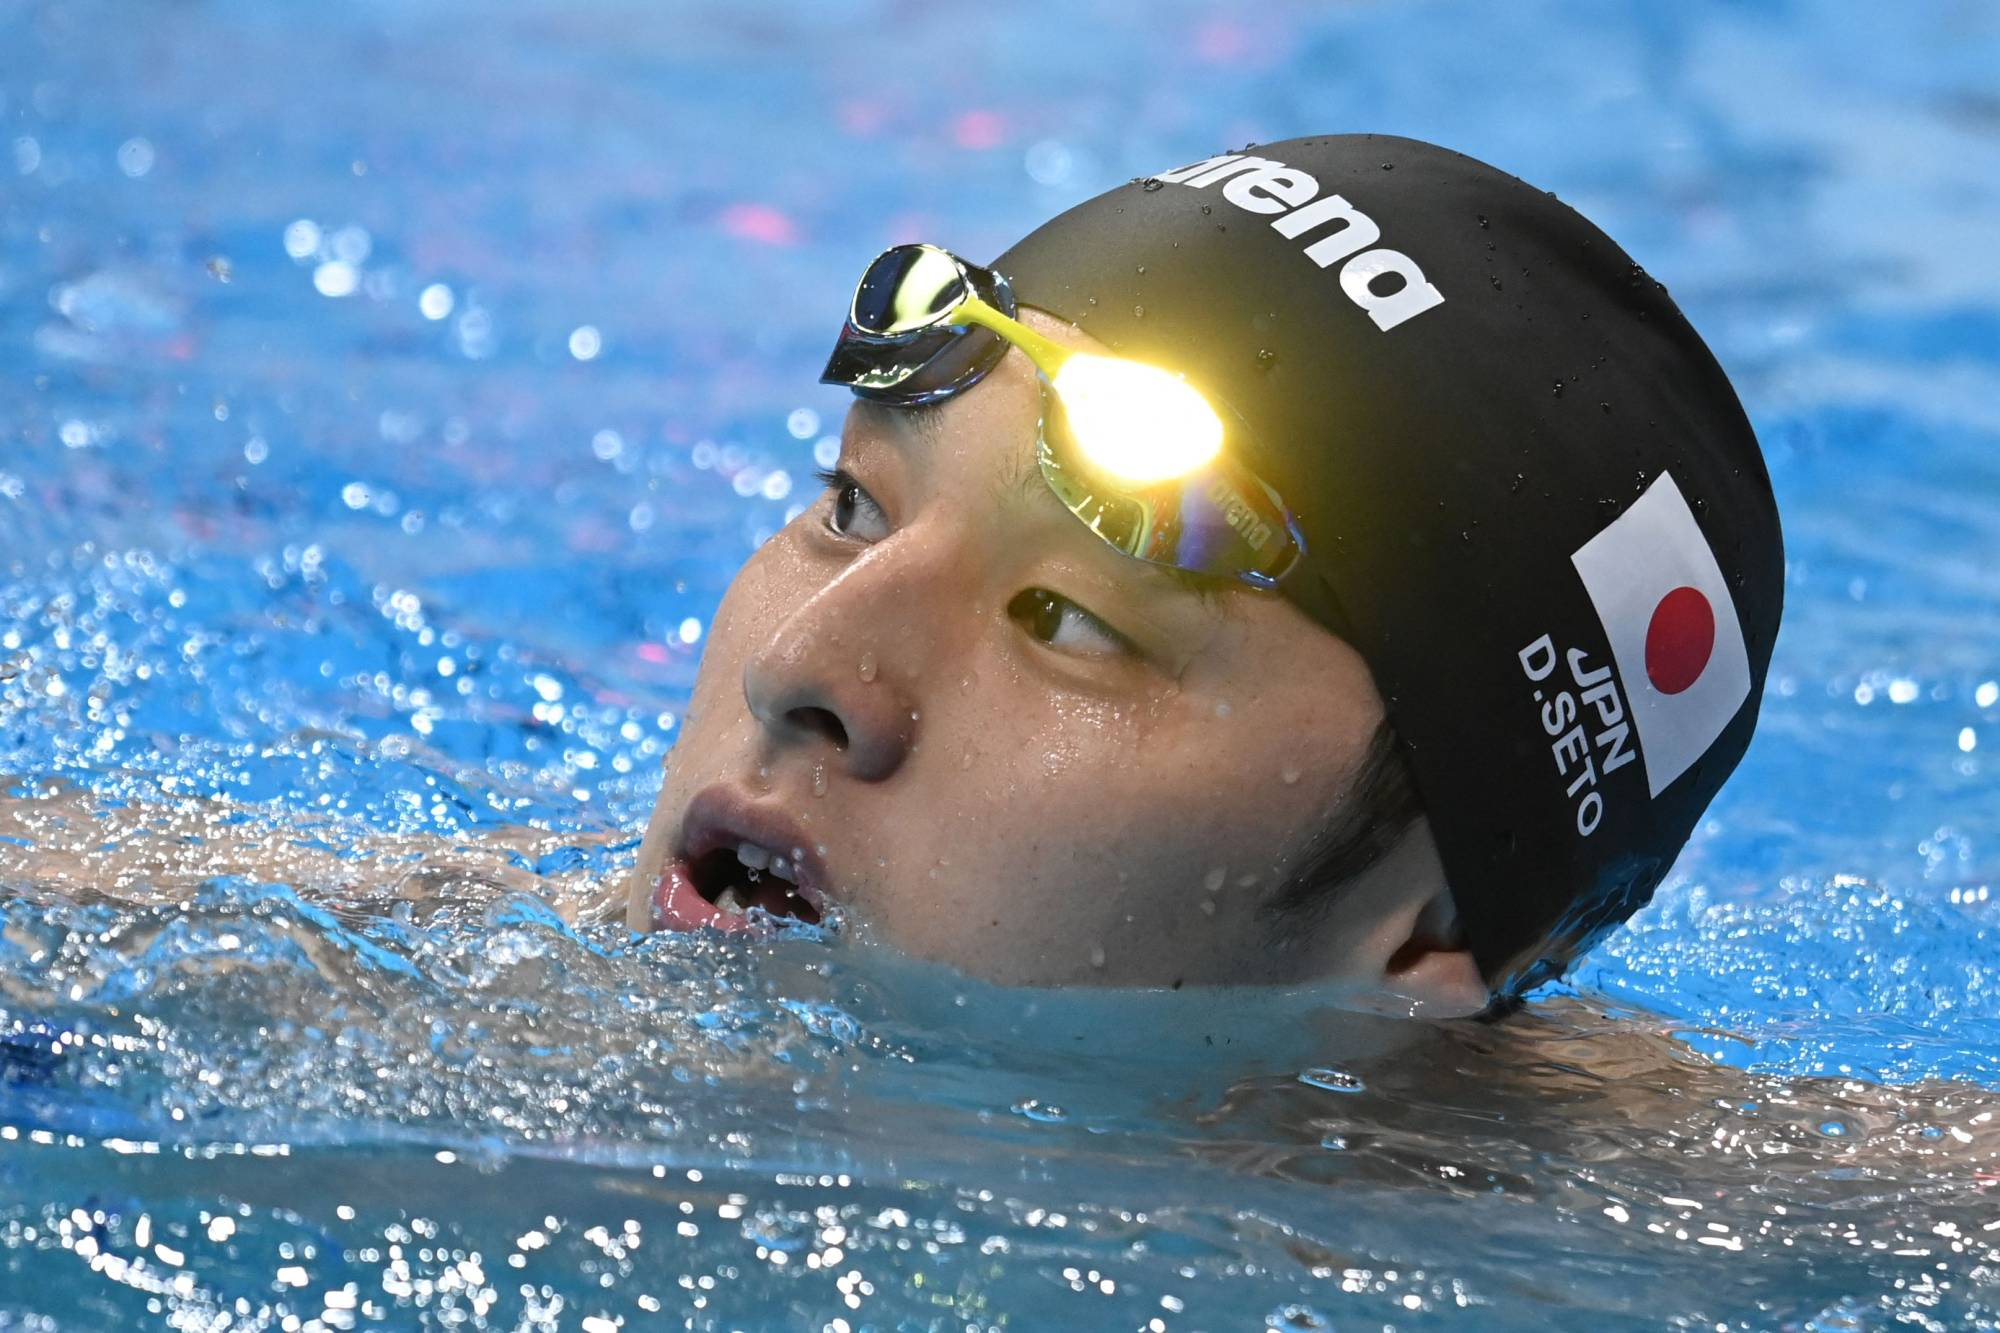 Japan's Daiya Seto finished fourth in the men's 200-meter individual medley on Friday, missing out on a medal in the only final he reached at the Tokyo Games. | AFP-JIJI